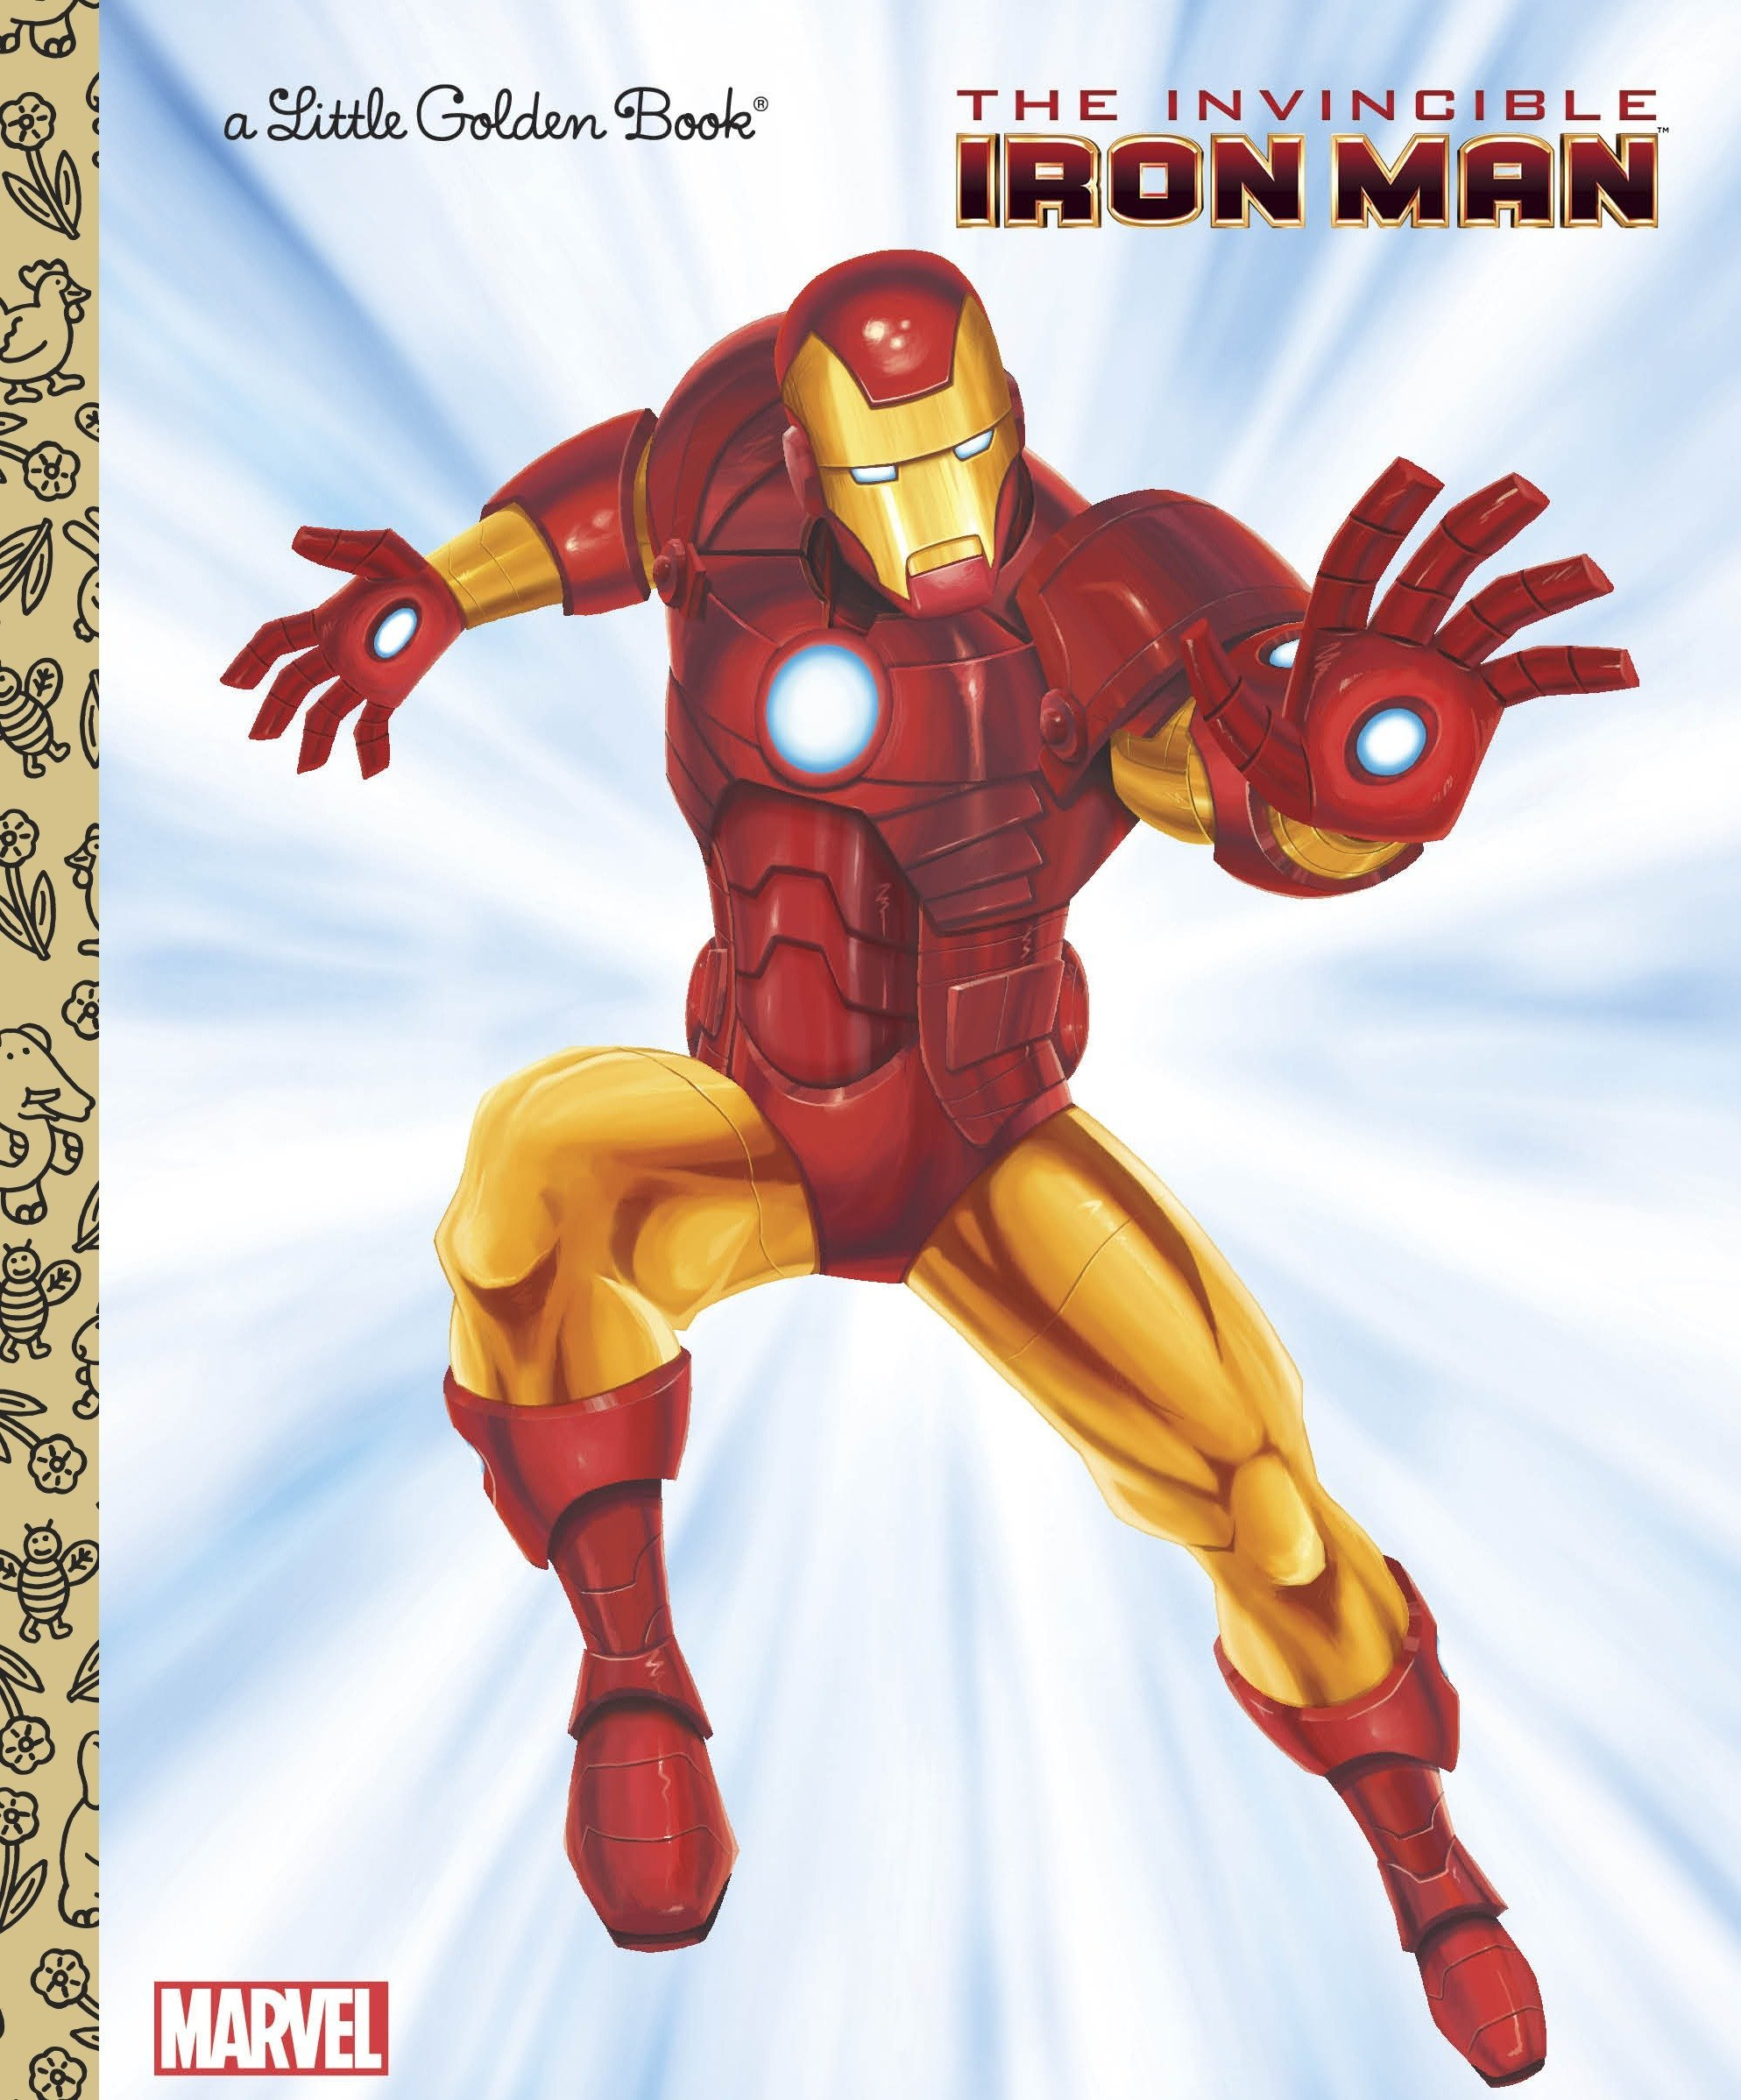 Invincible Iron Man Marvel Little product image